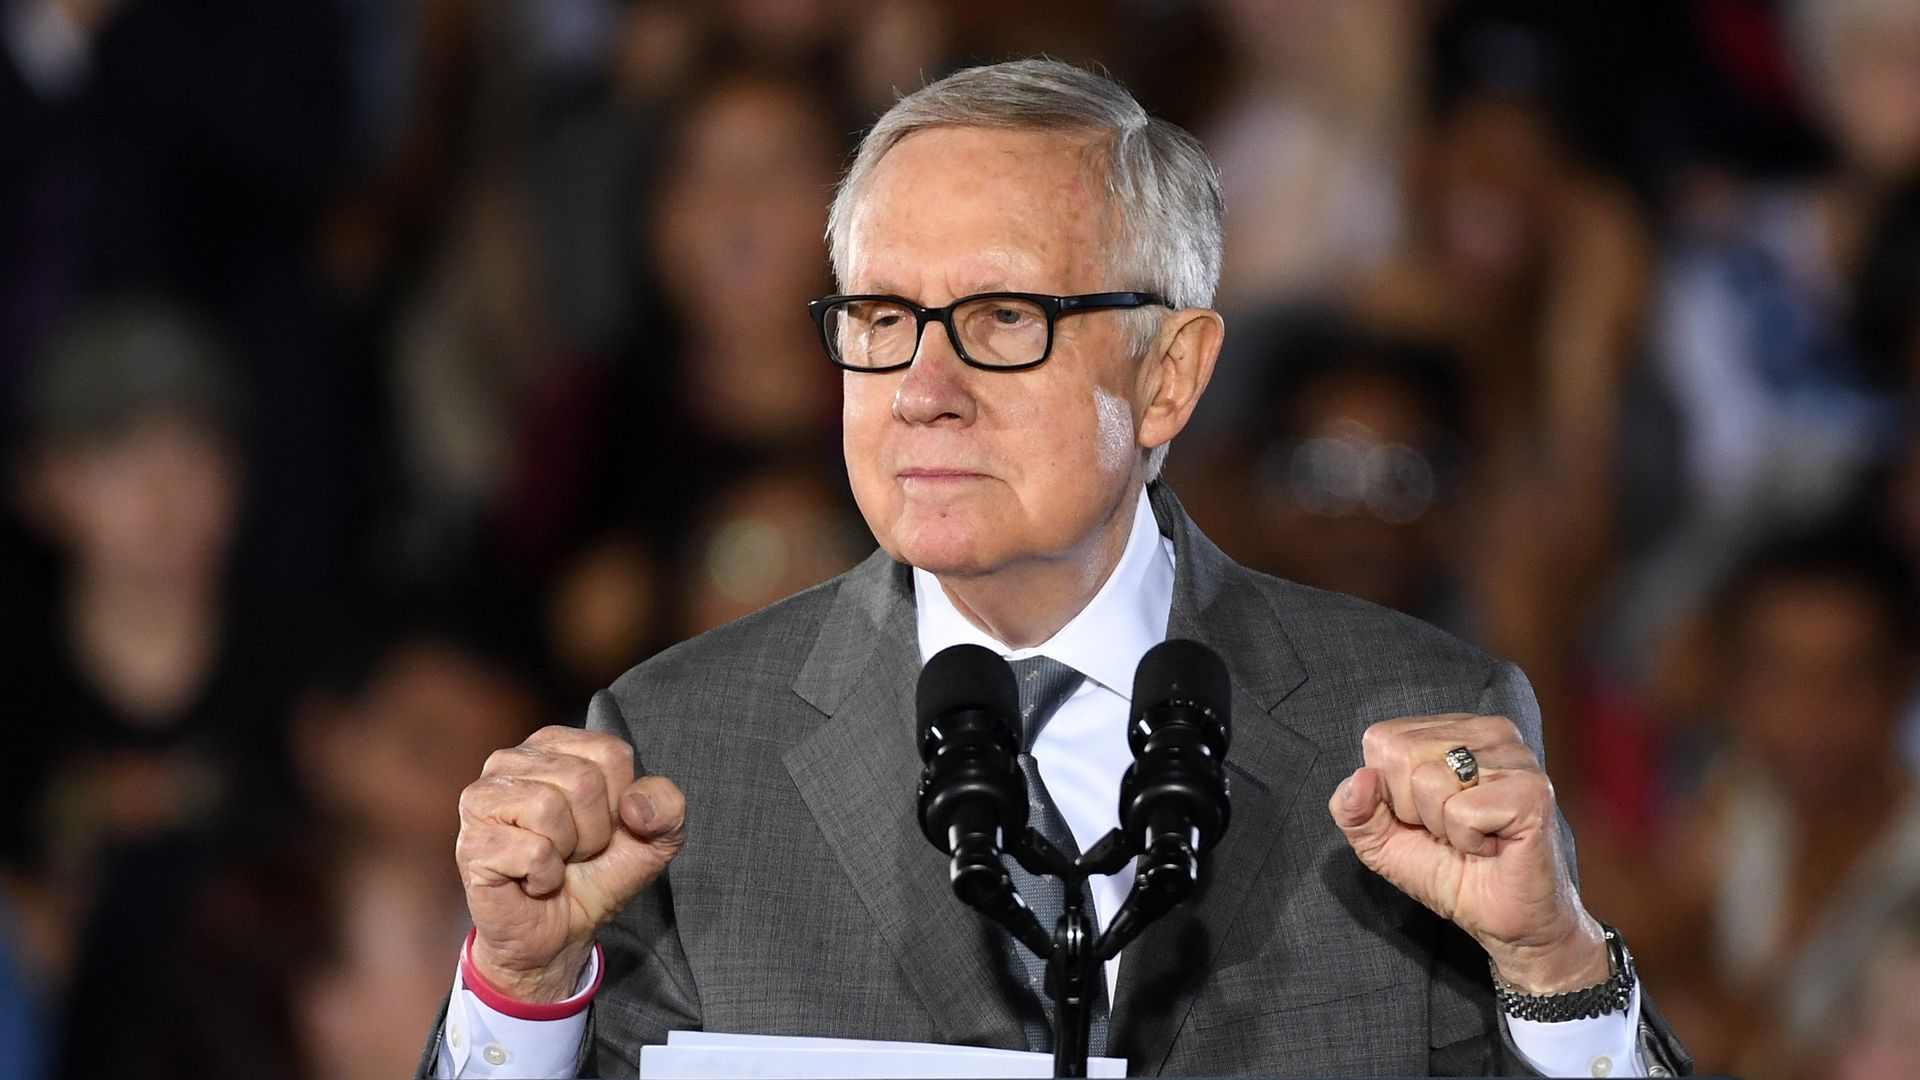 Former U.S. Senate Minority Leader Harry Reid (D-NV)